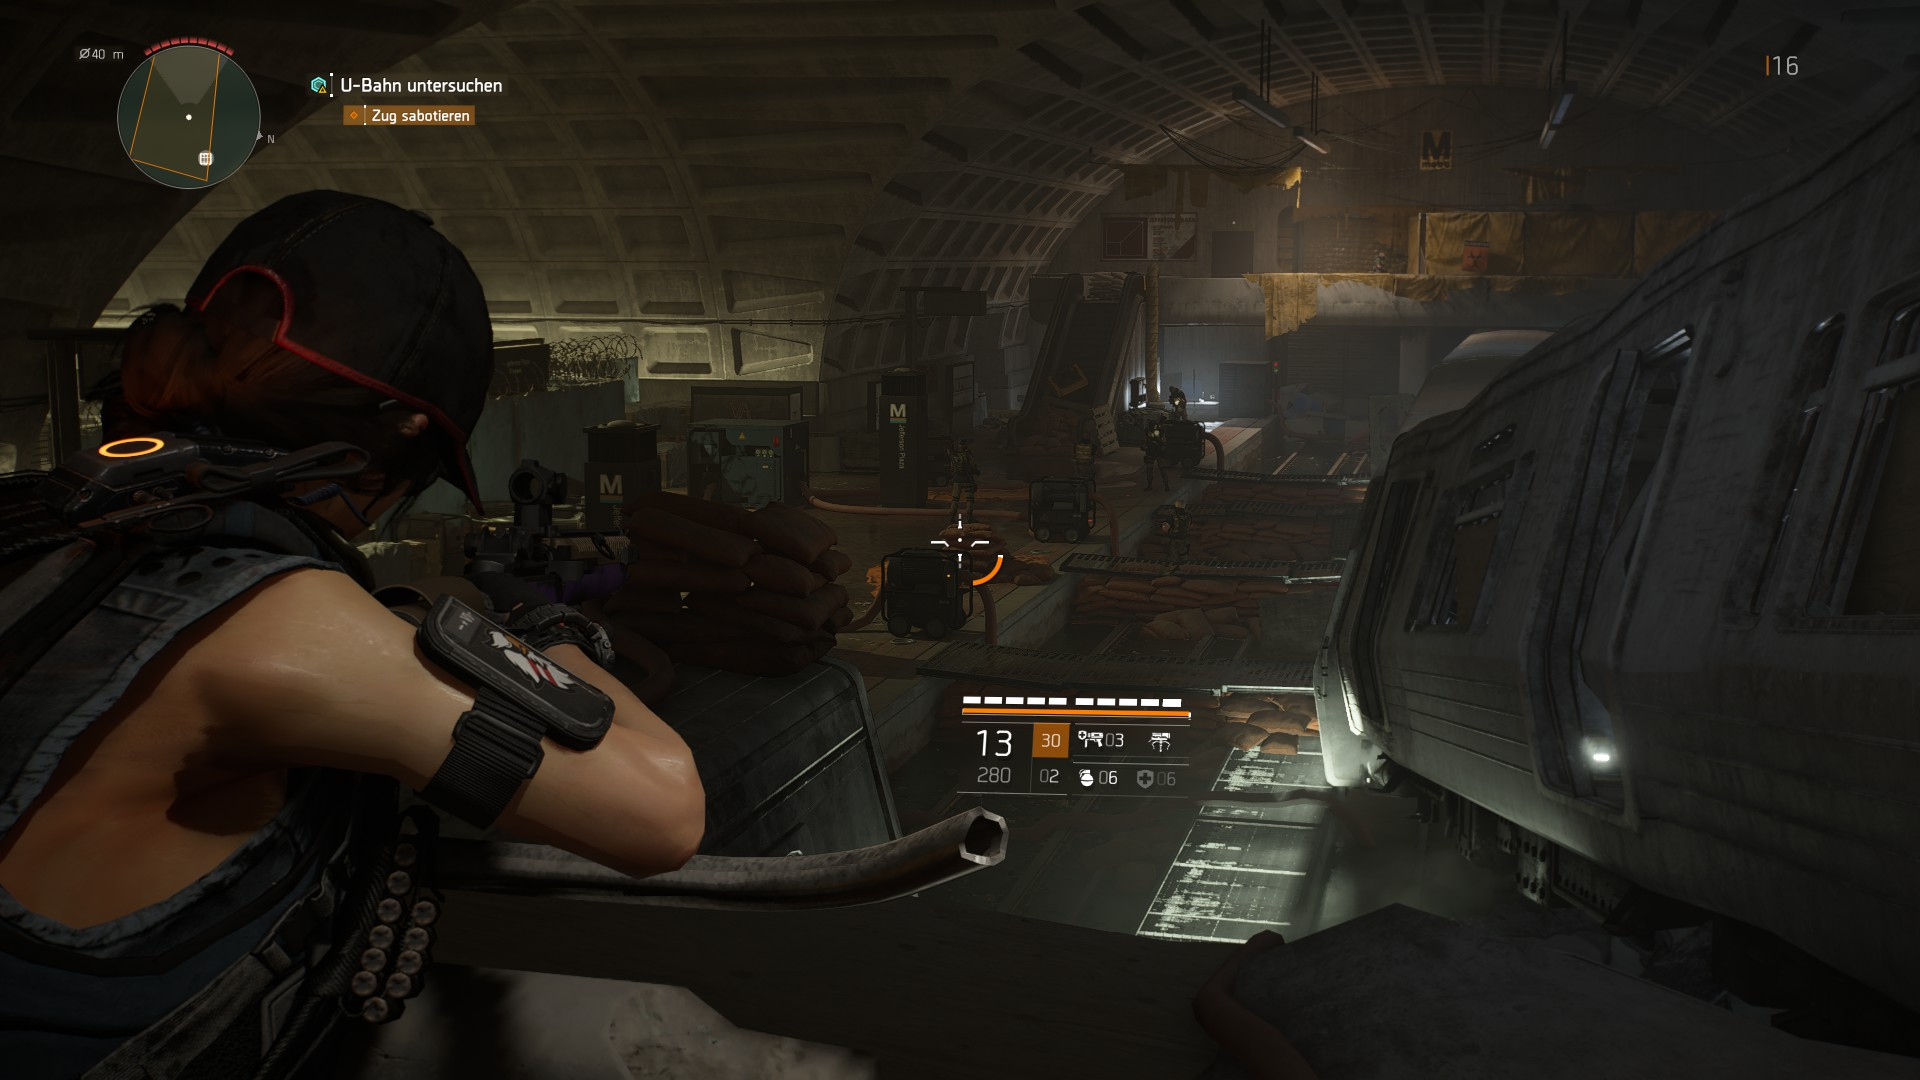 Tom Clancy's The Division® 22019-5-13-2-35-47.jpg